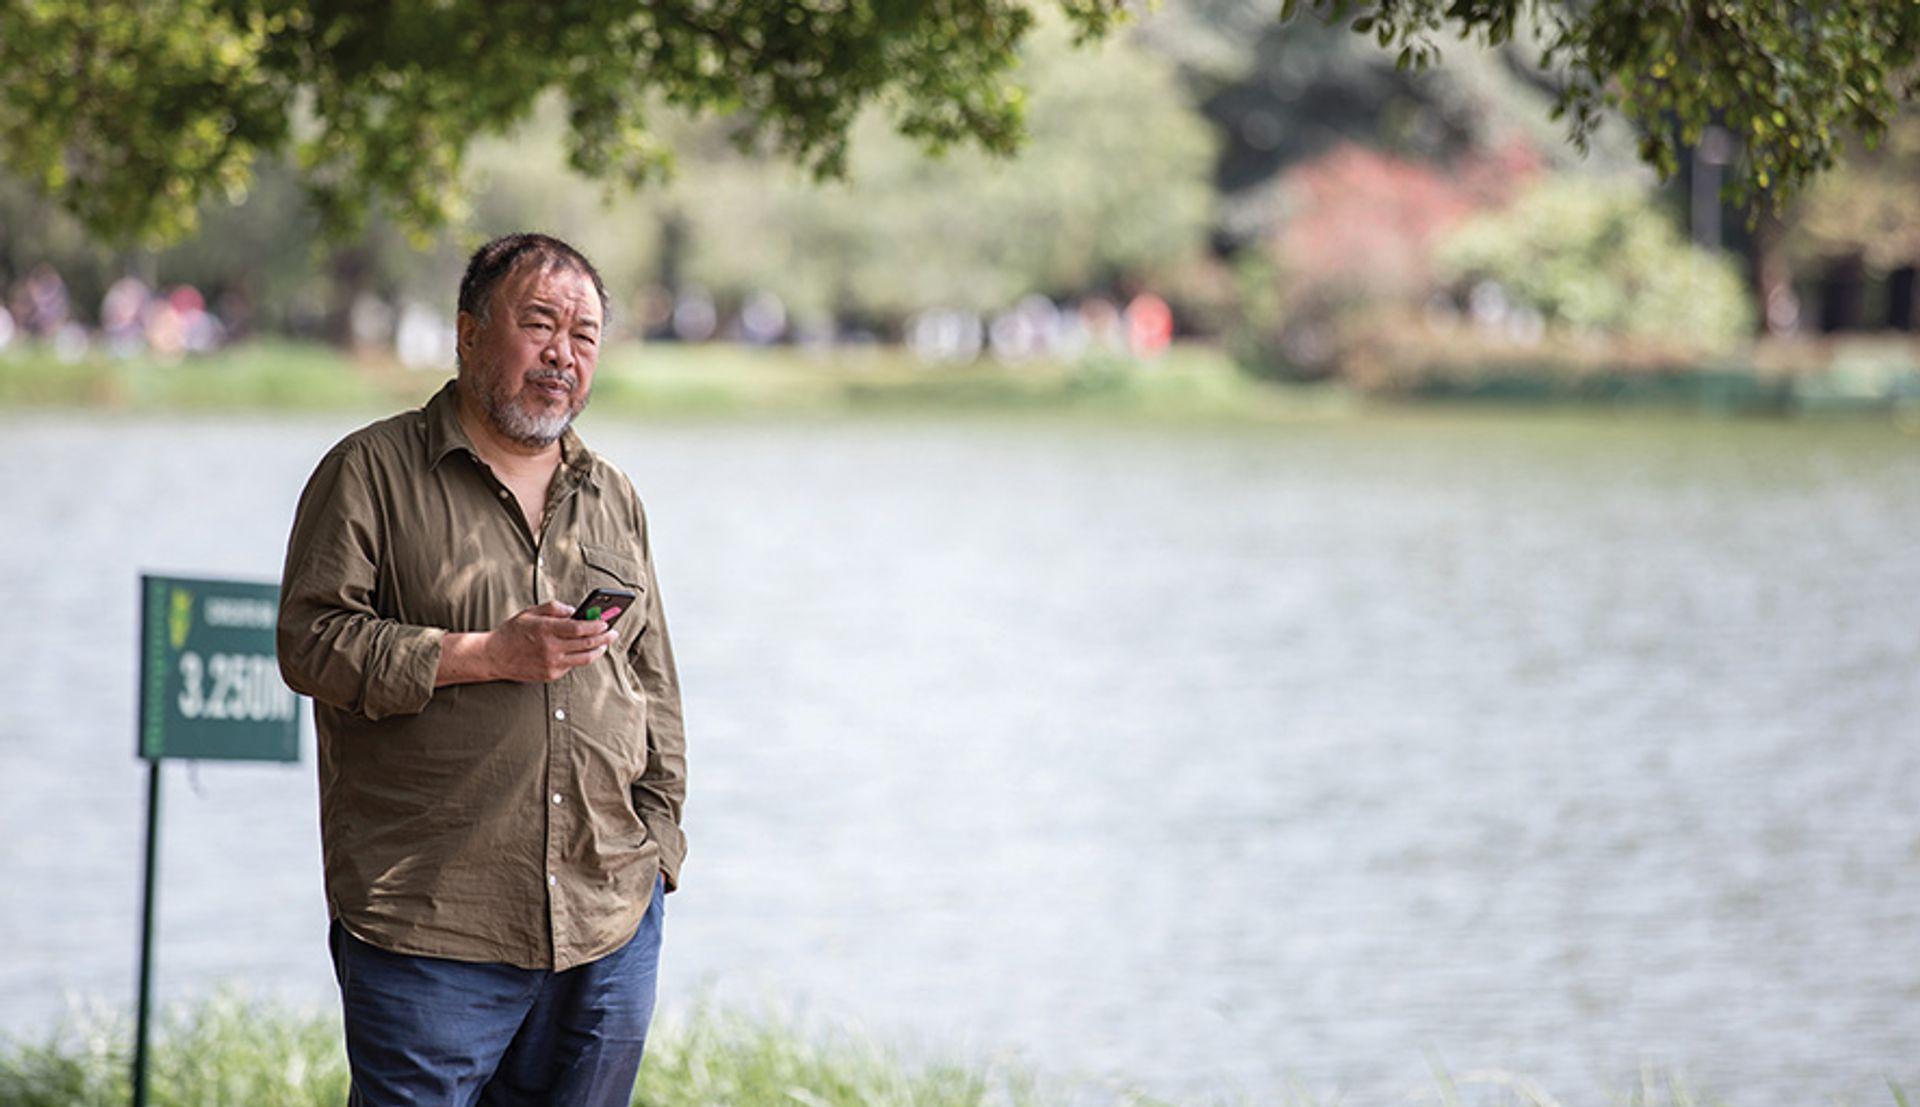 Ai Weiwei by the Ibirapuera Park lake in Sao Paulo, where he recently had an exhibition Photo: Carol Quintanilha